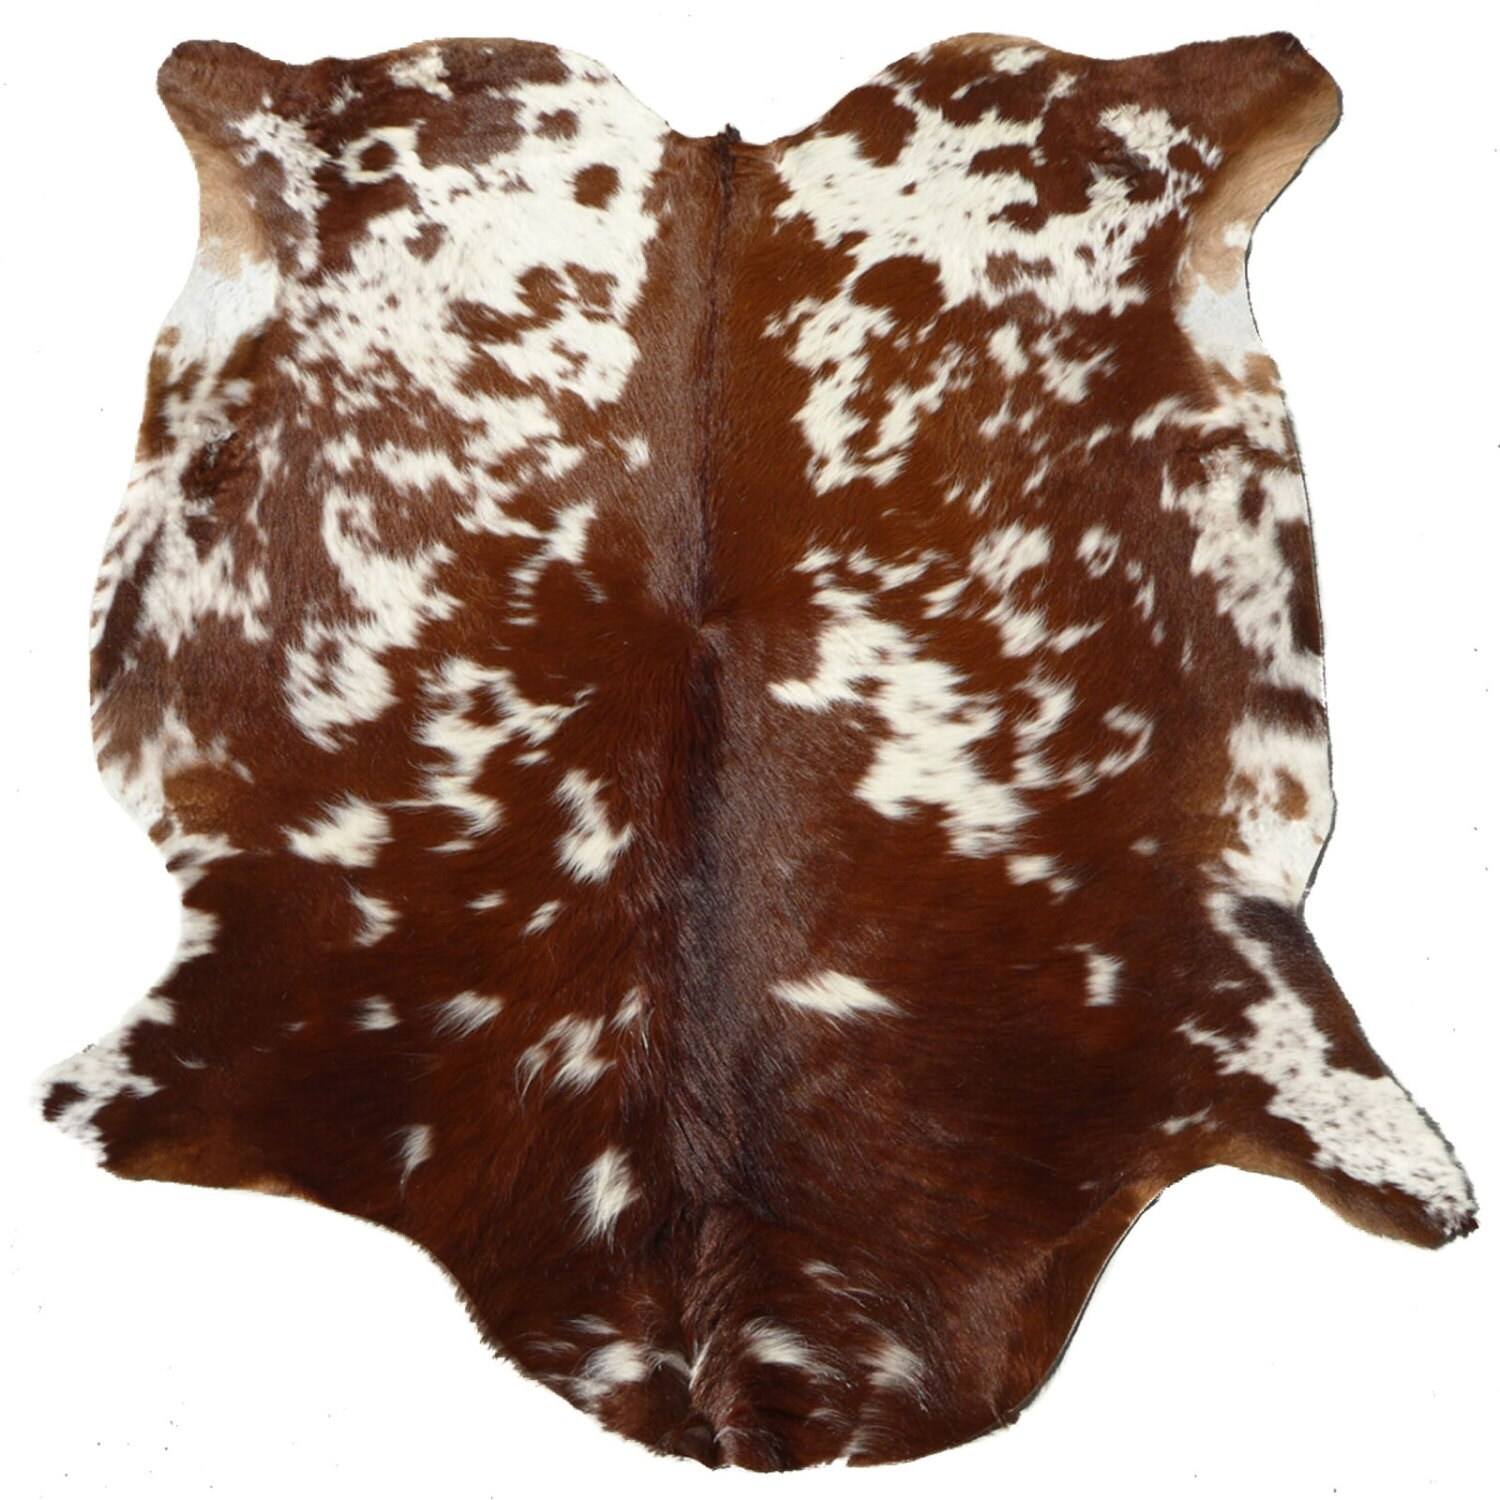 Cowhide Rug Cow Hide Leather Reddish Brown White